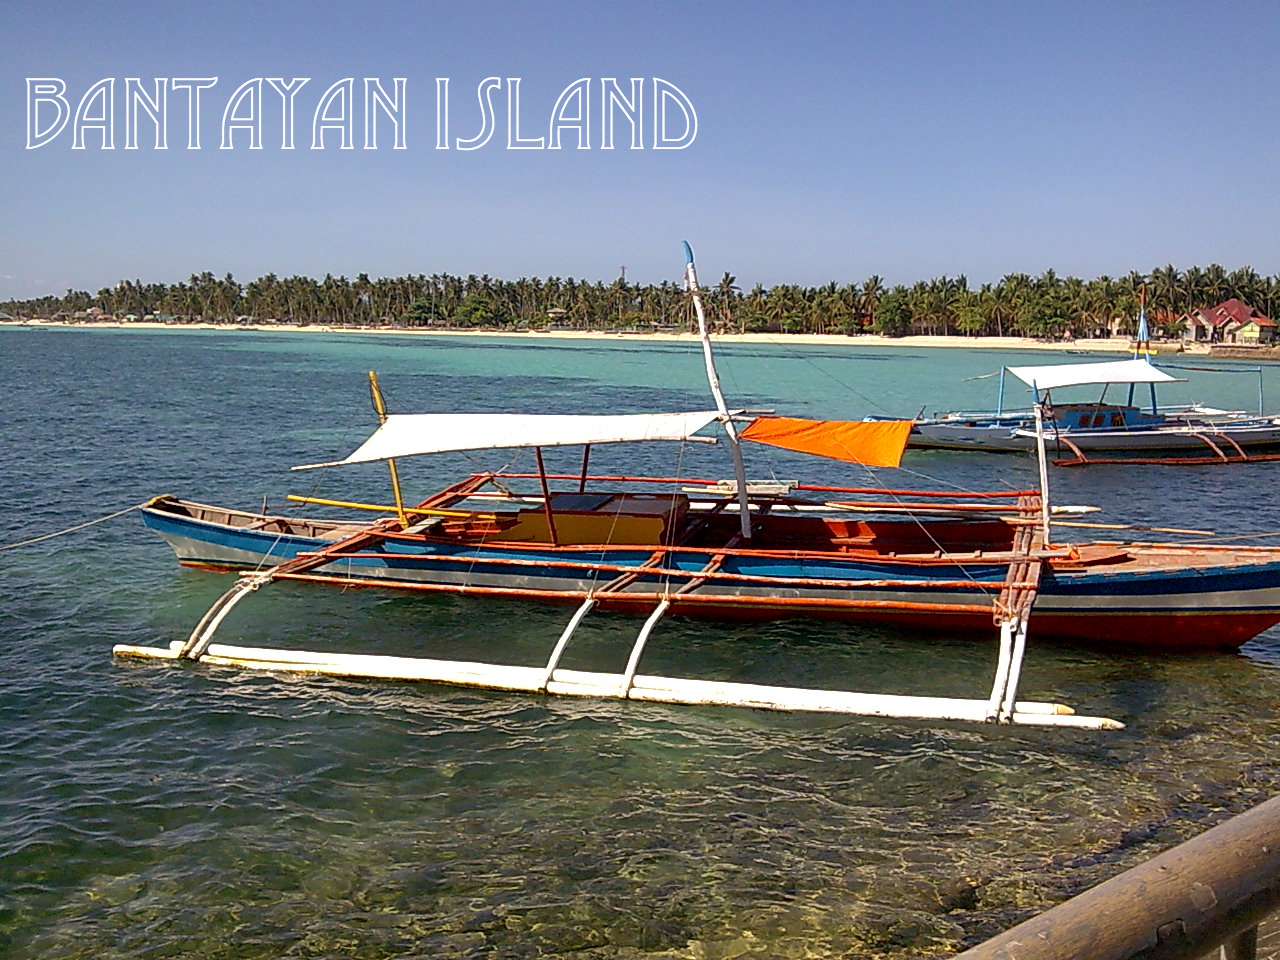 Travelling to Bantayan Island, Sta Fe Philippines